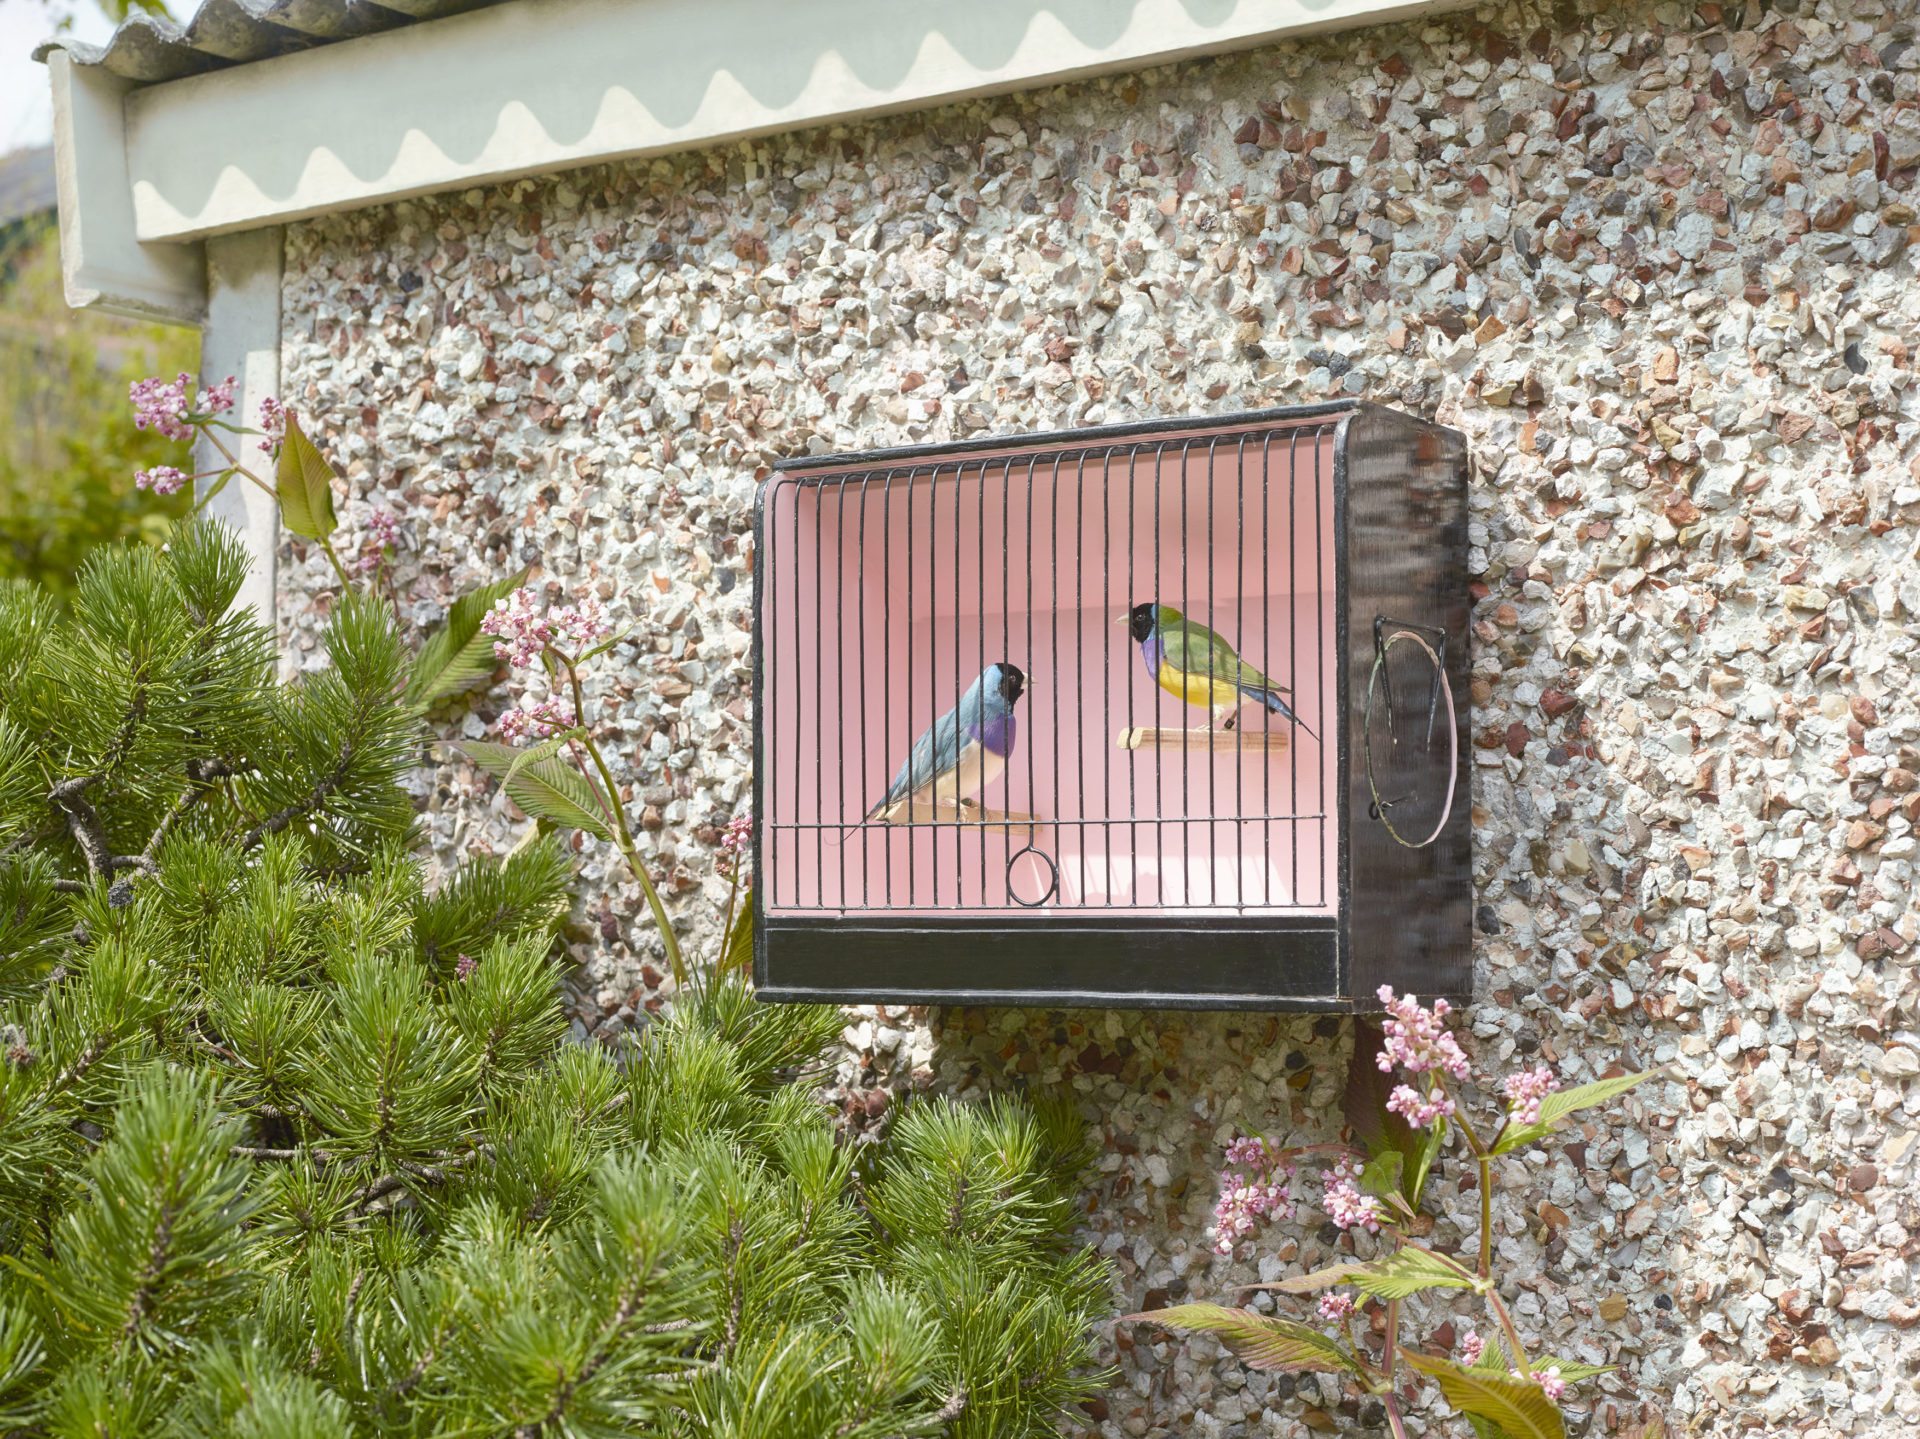 Finches in a pink cage outside – pebbledash garage – love birds – Shaw and Shaw Advertising photographers photographer photography